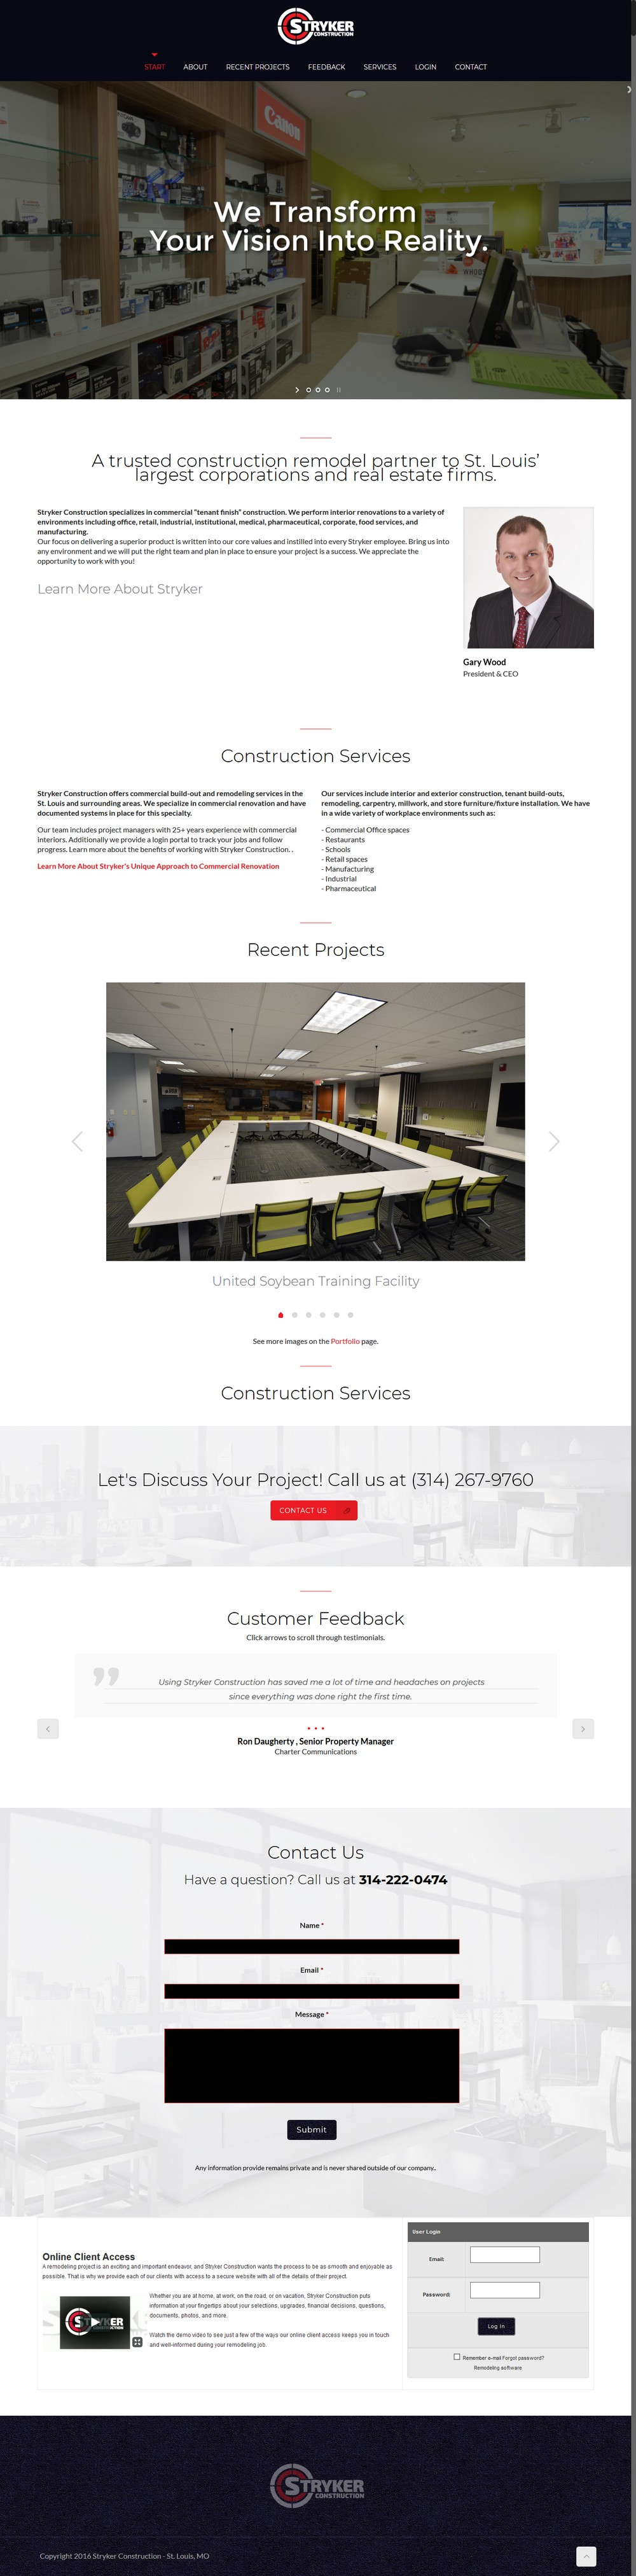 Stryker Construction - Successfully Delivered Projects On-Time and On-Budget. Improved Website Conversation Rate By 80% Against Existing Control.